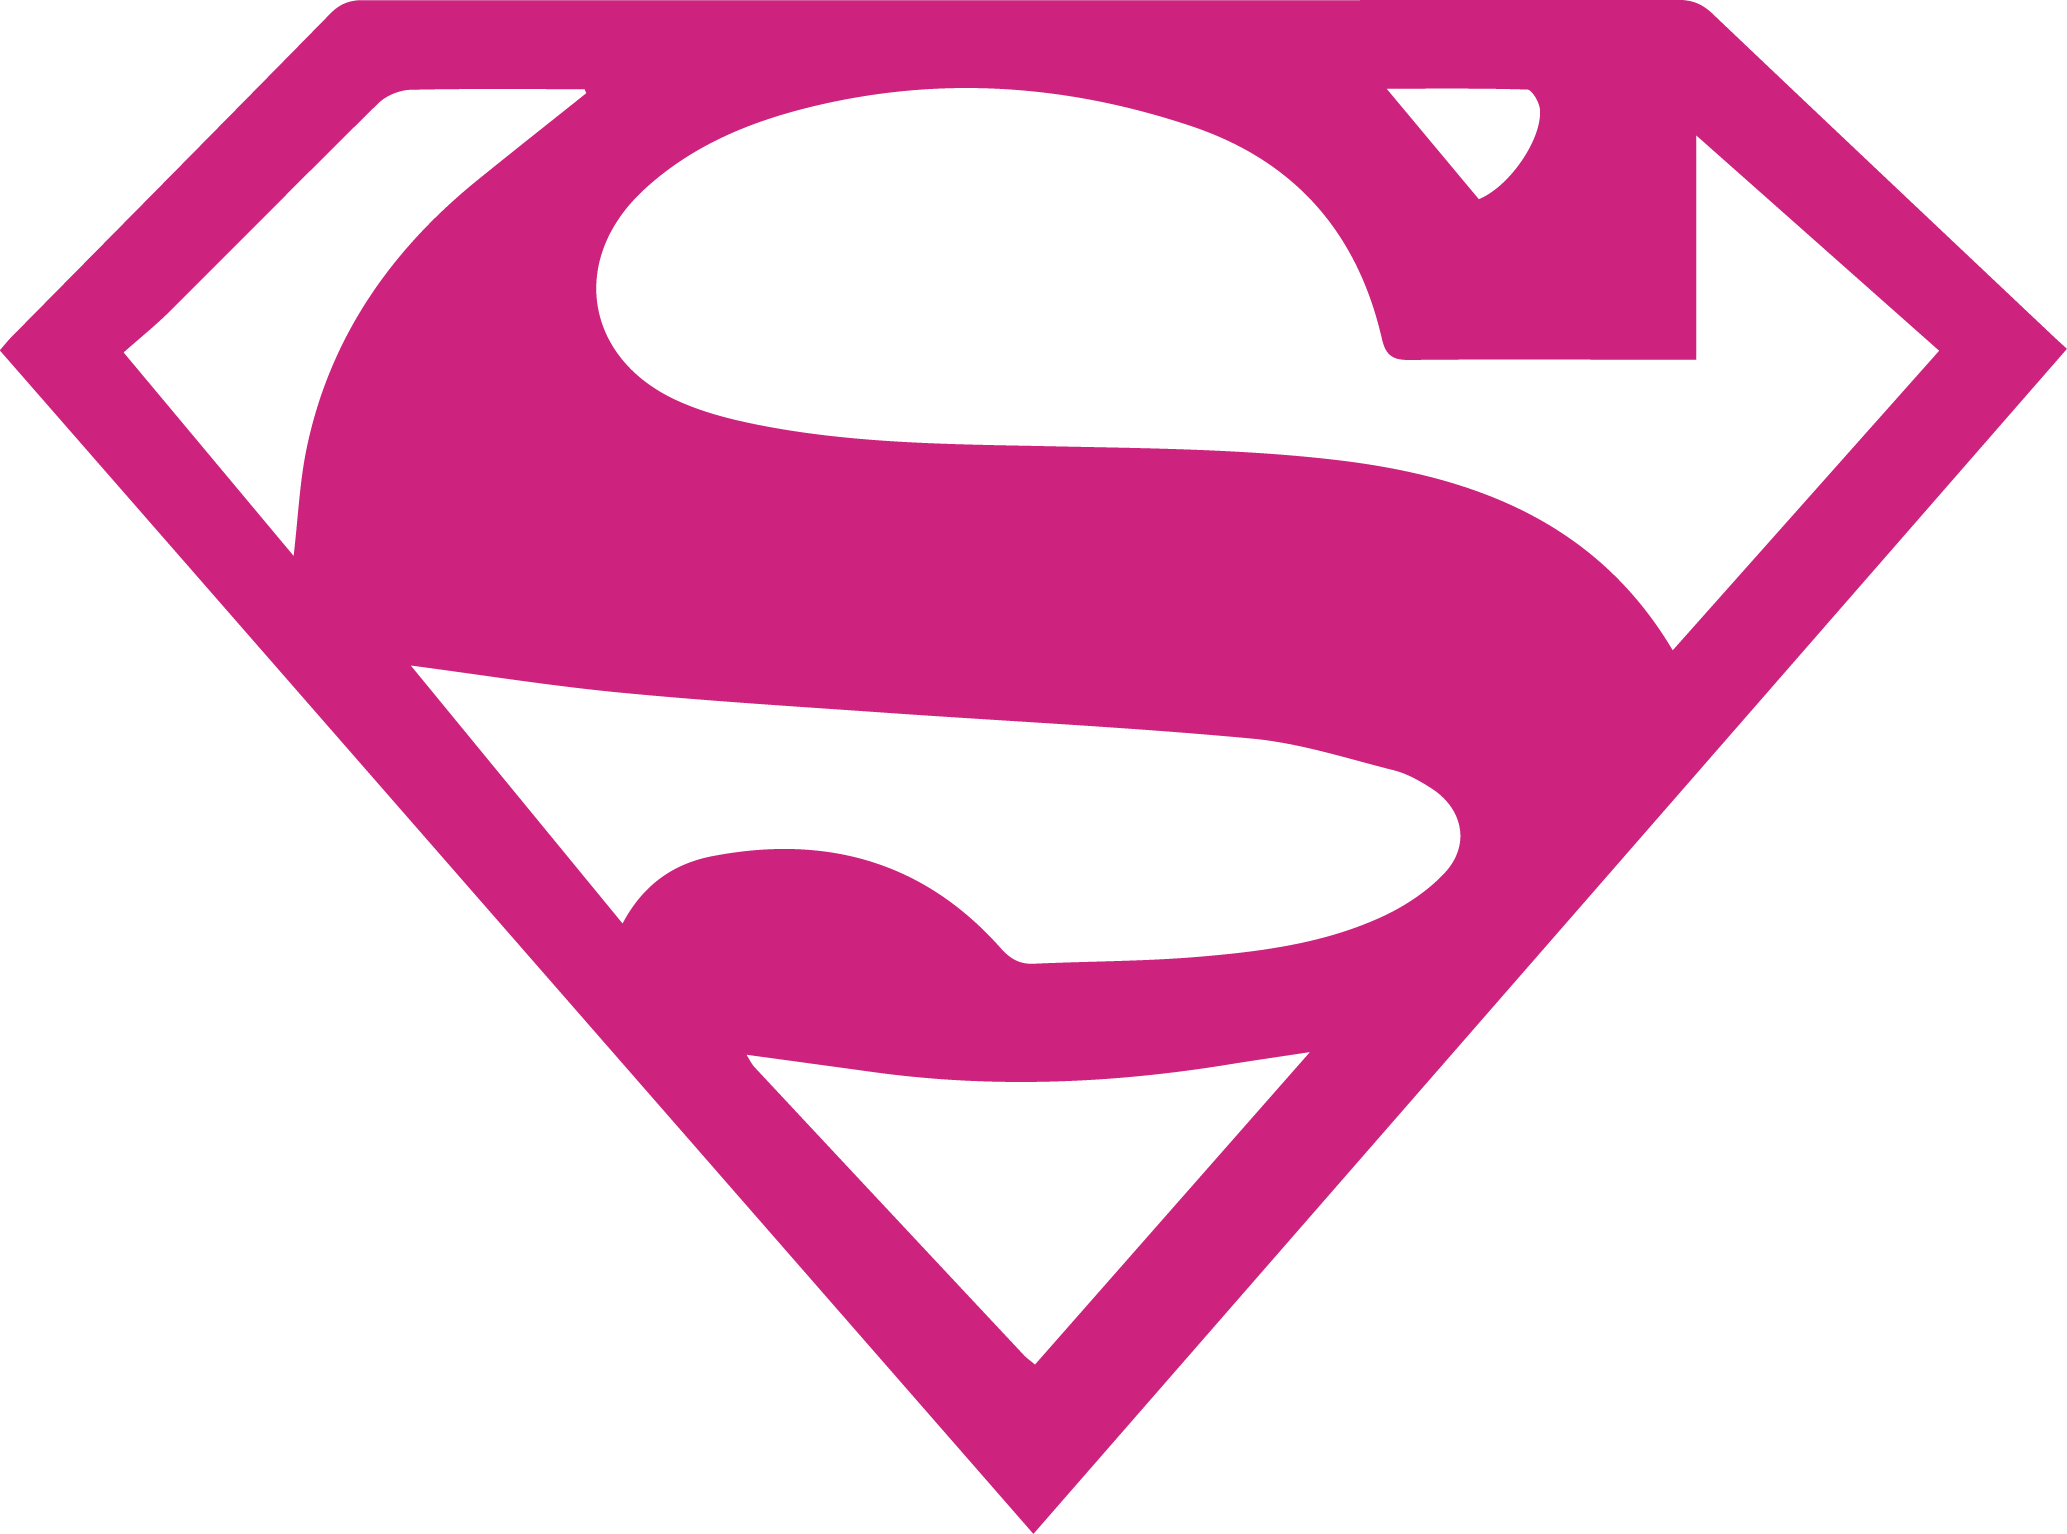 The Supergirl icon is a registered Trademark of DC Comics.